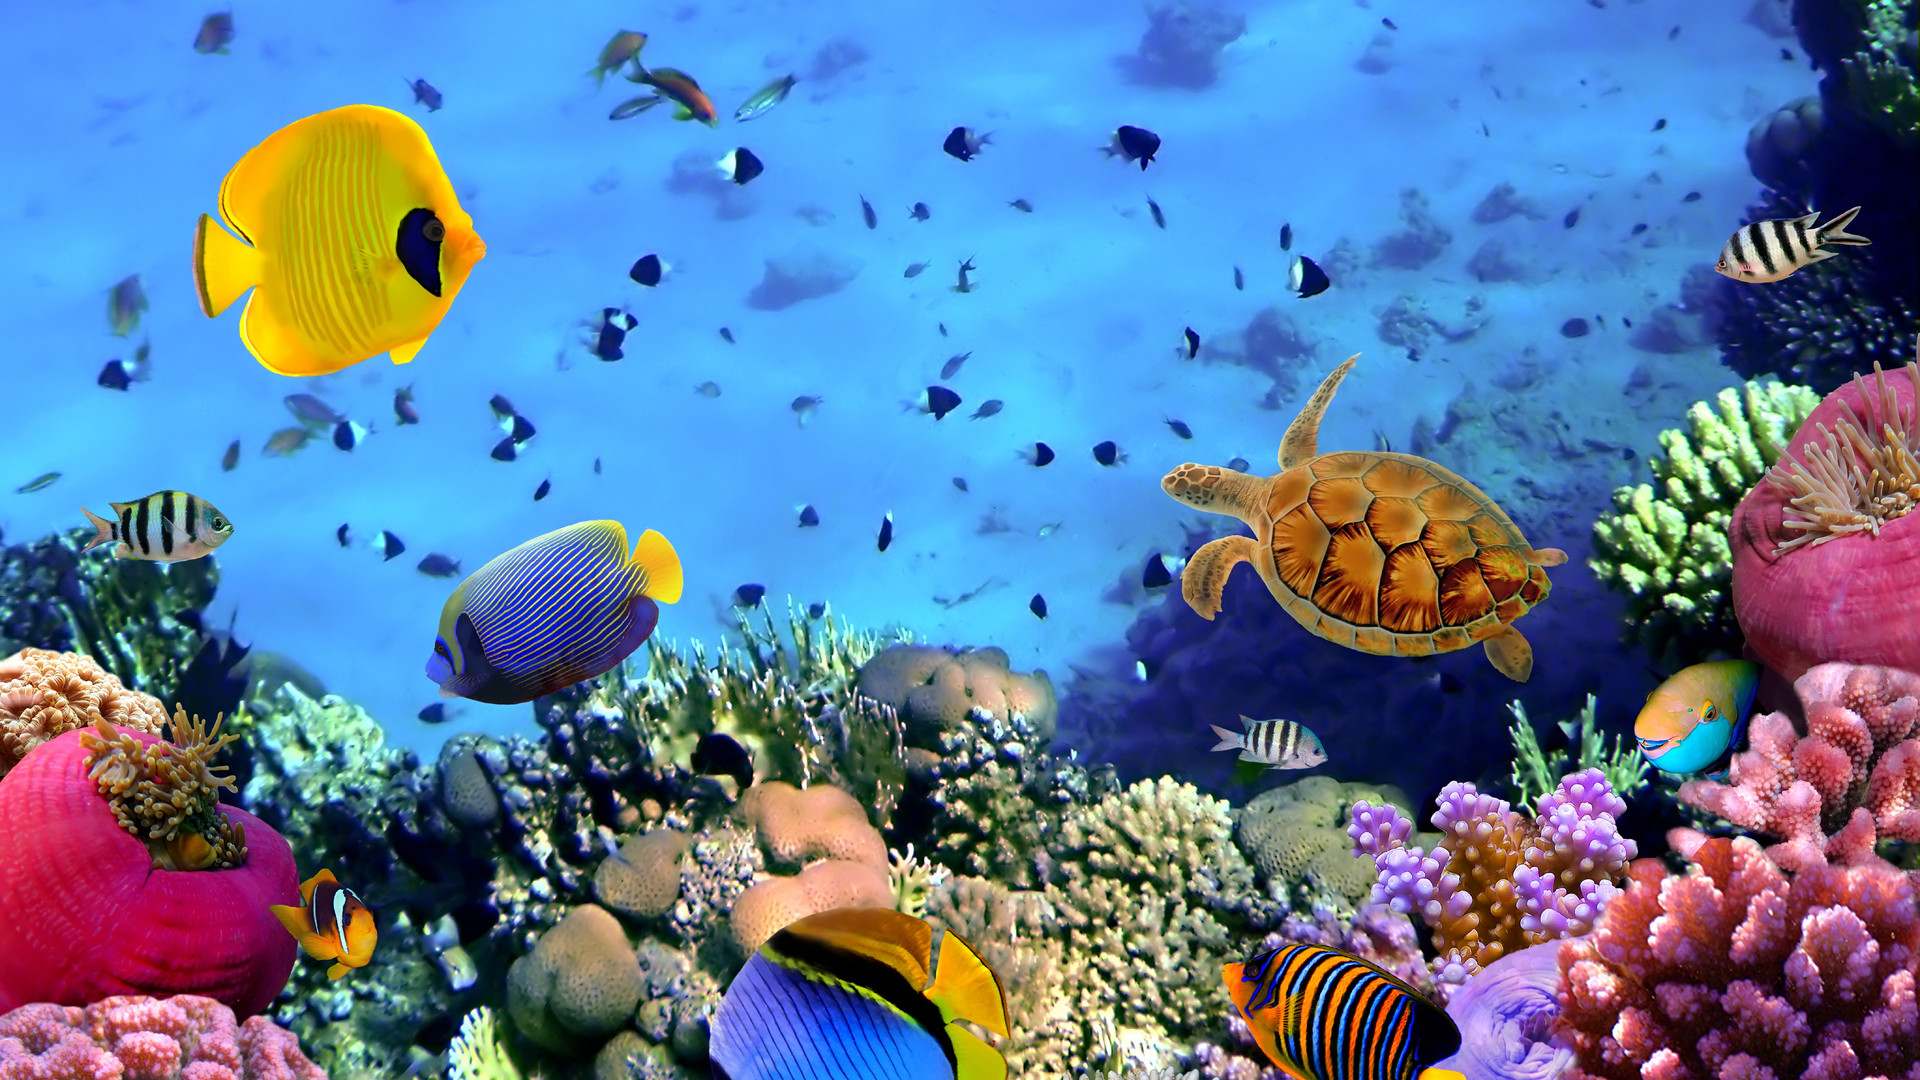 coral reef backgrounds 54 images